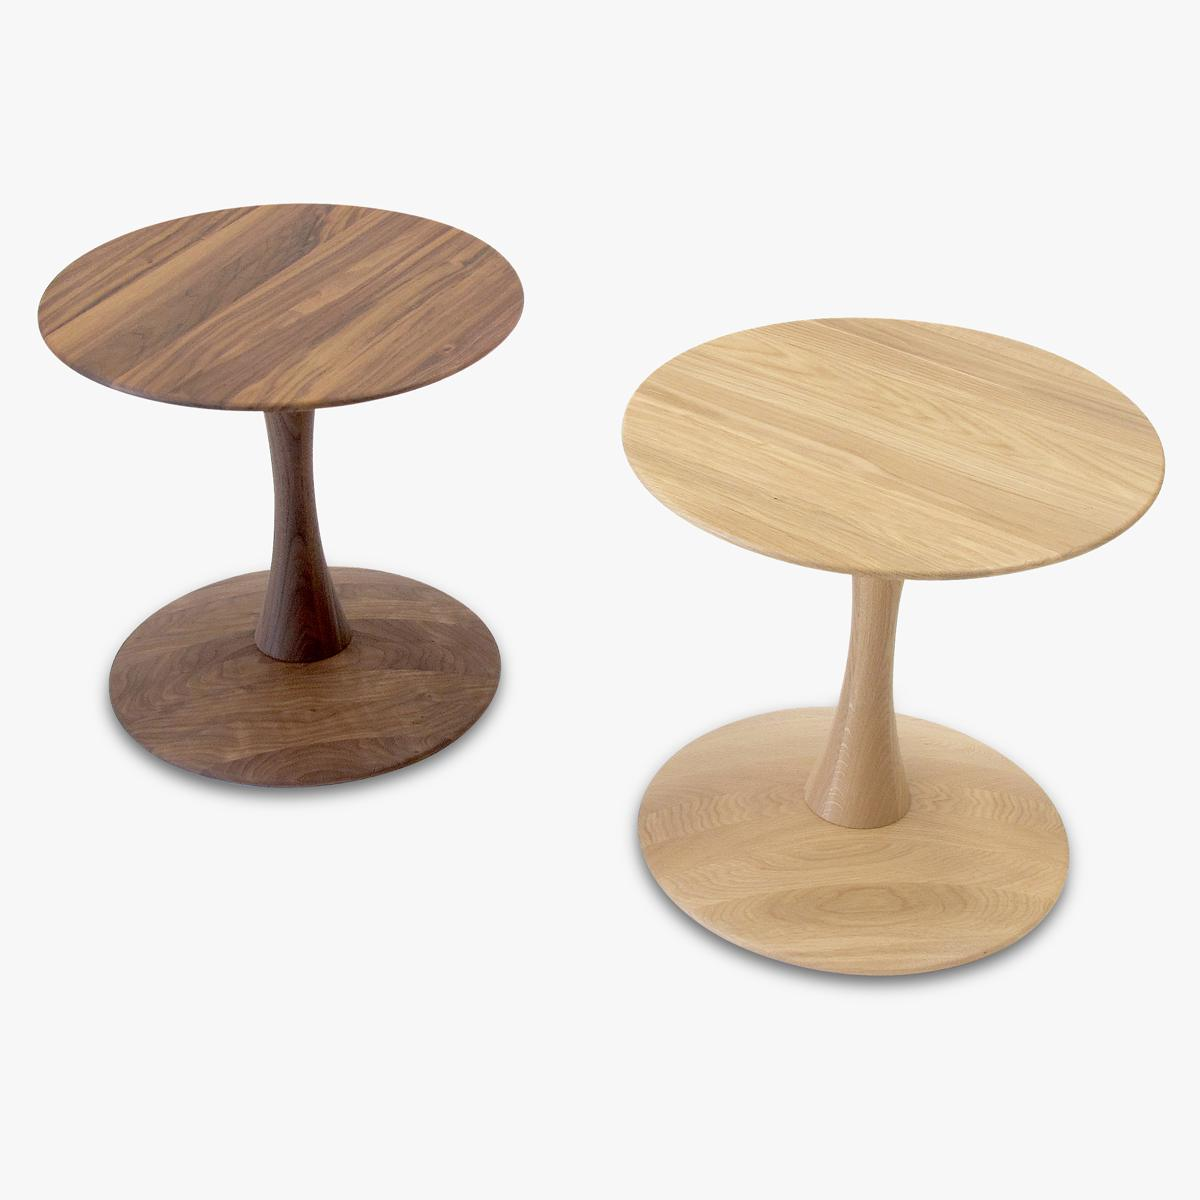 Nanna-Ditzel-Toadstool-Walnut-Oak-1200